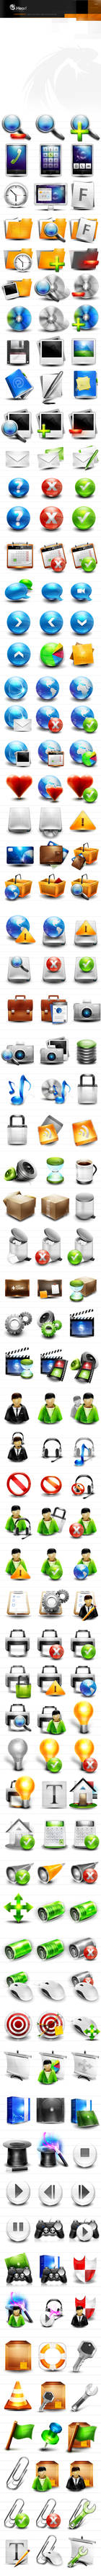 iconset0001 - 4500 icons for 99 $ only